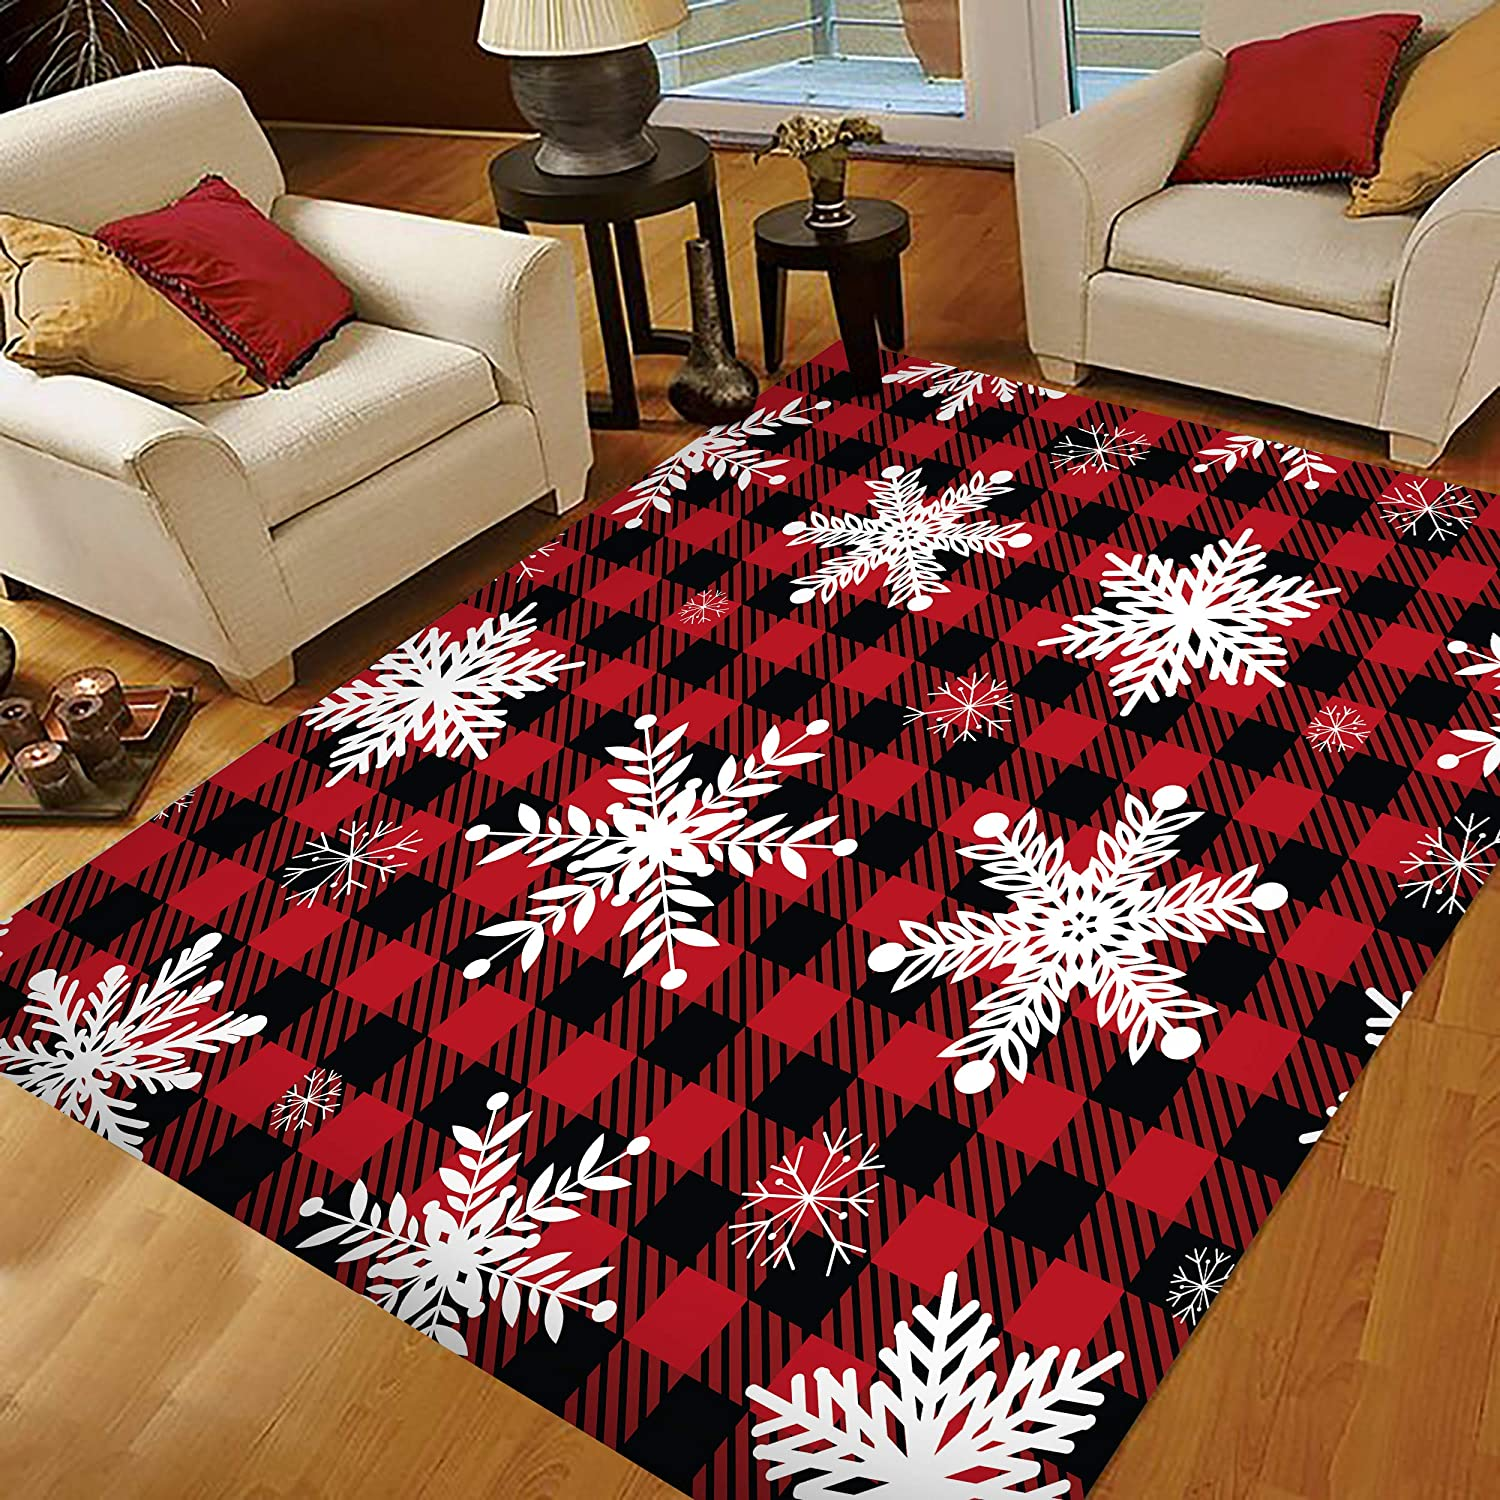 Amazon Com Christmas Area Rugs Area Rugs For Living Room Bedroom Small Area Rugs 2x3 Snowflakes Red Black Buffalo Plaid Kitchen Dining